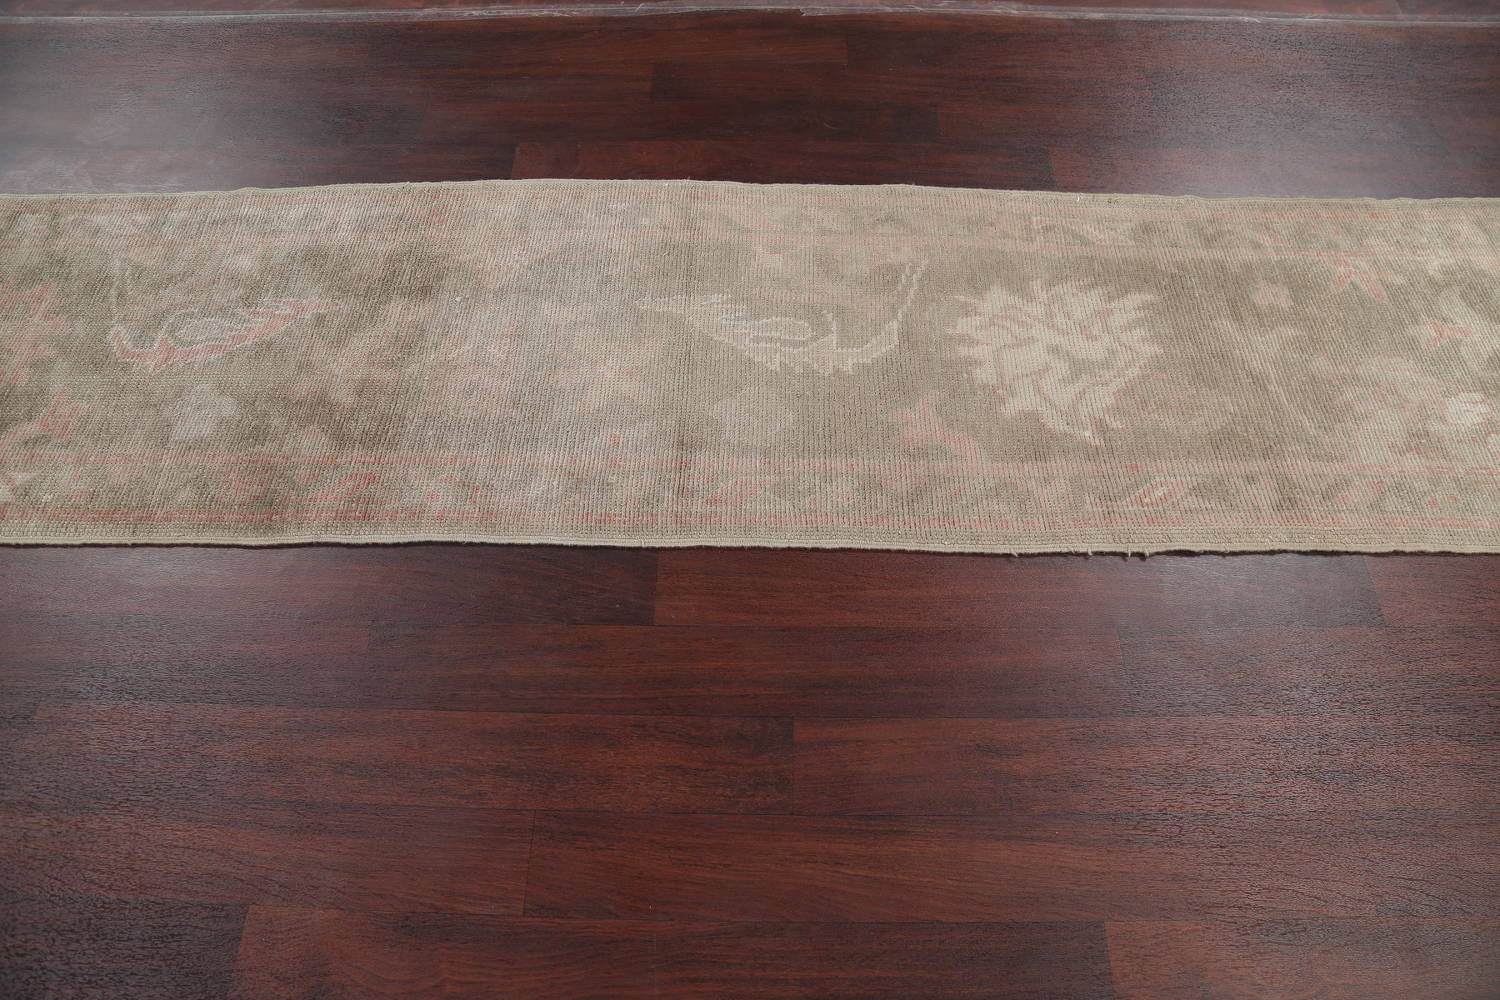 Vegetable Dye Muted Green Oushak Turkish Hand-Knotted Runner Rug 2x12 image 13